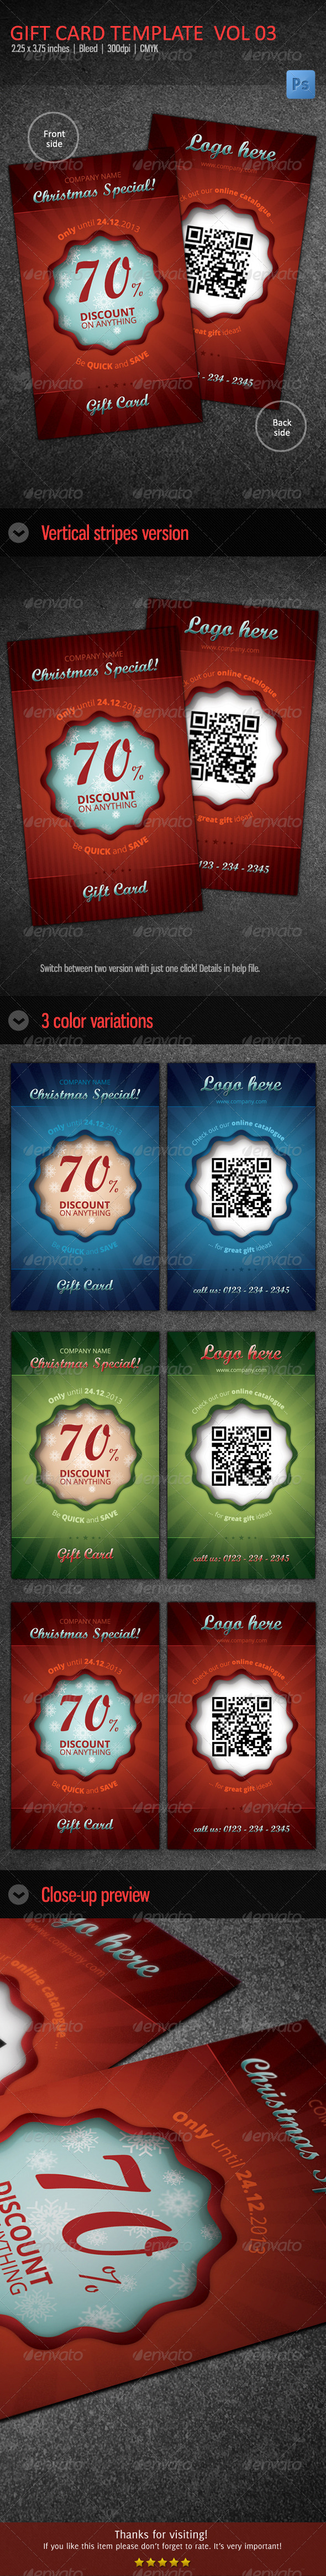 GraphicRiver Christmas Gift Card Voucher vol 03 6179185